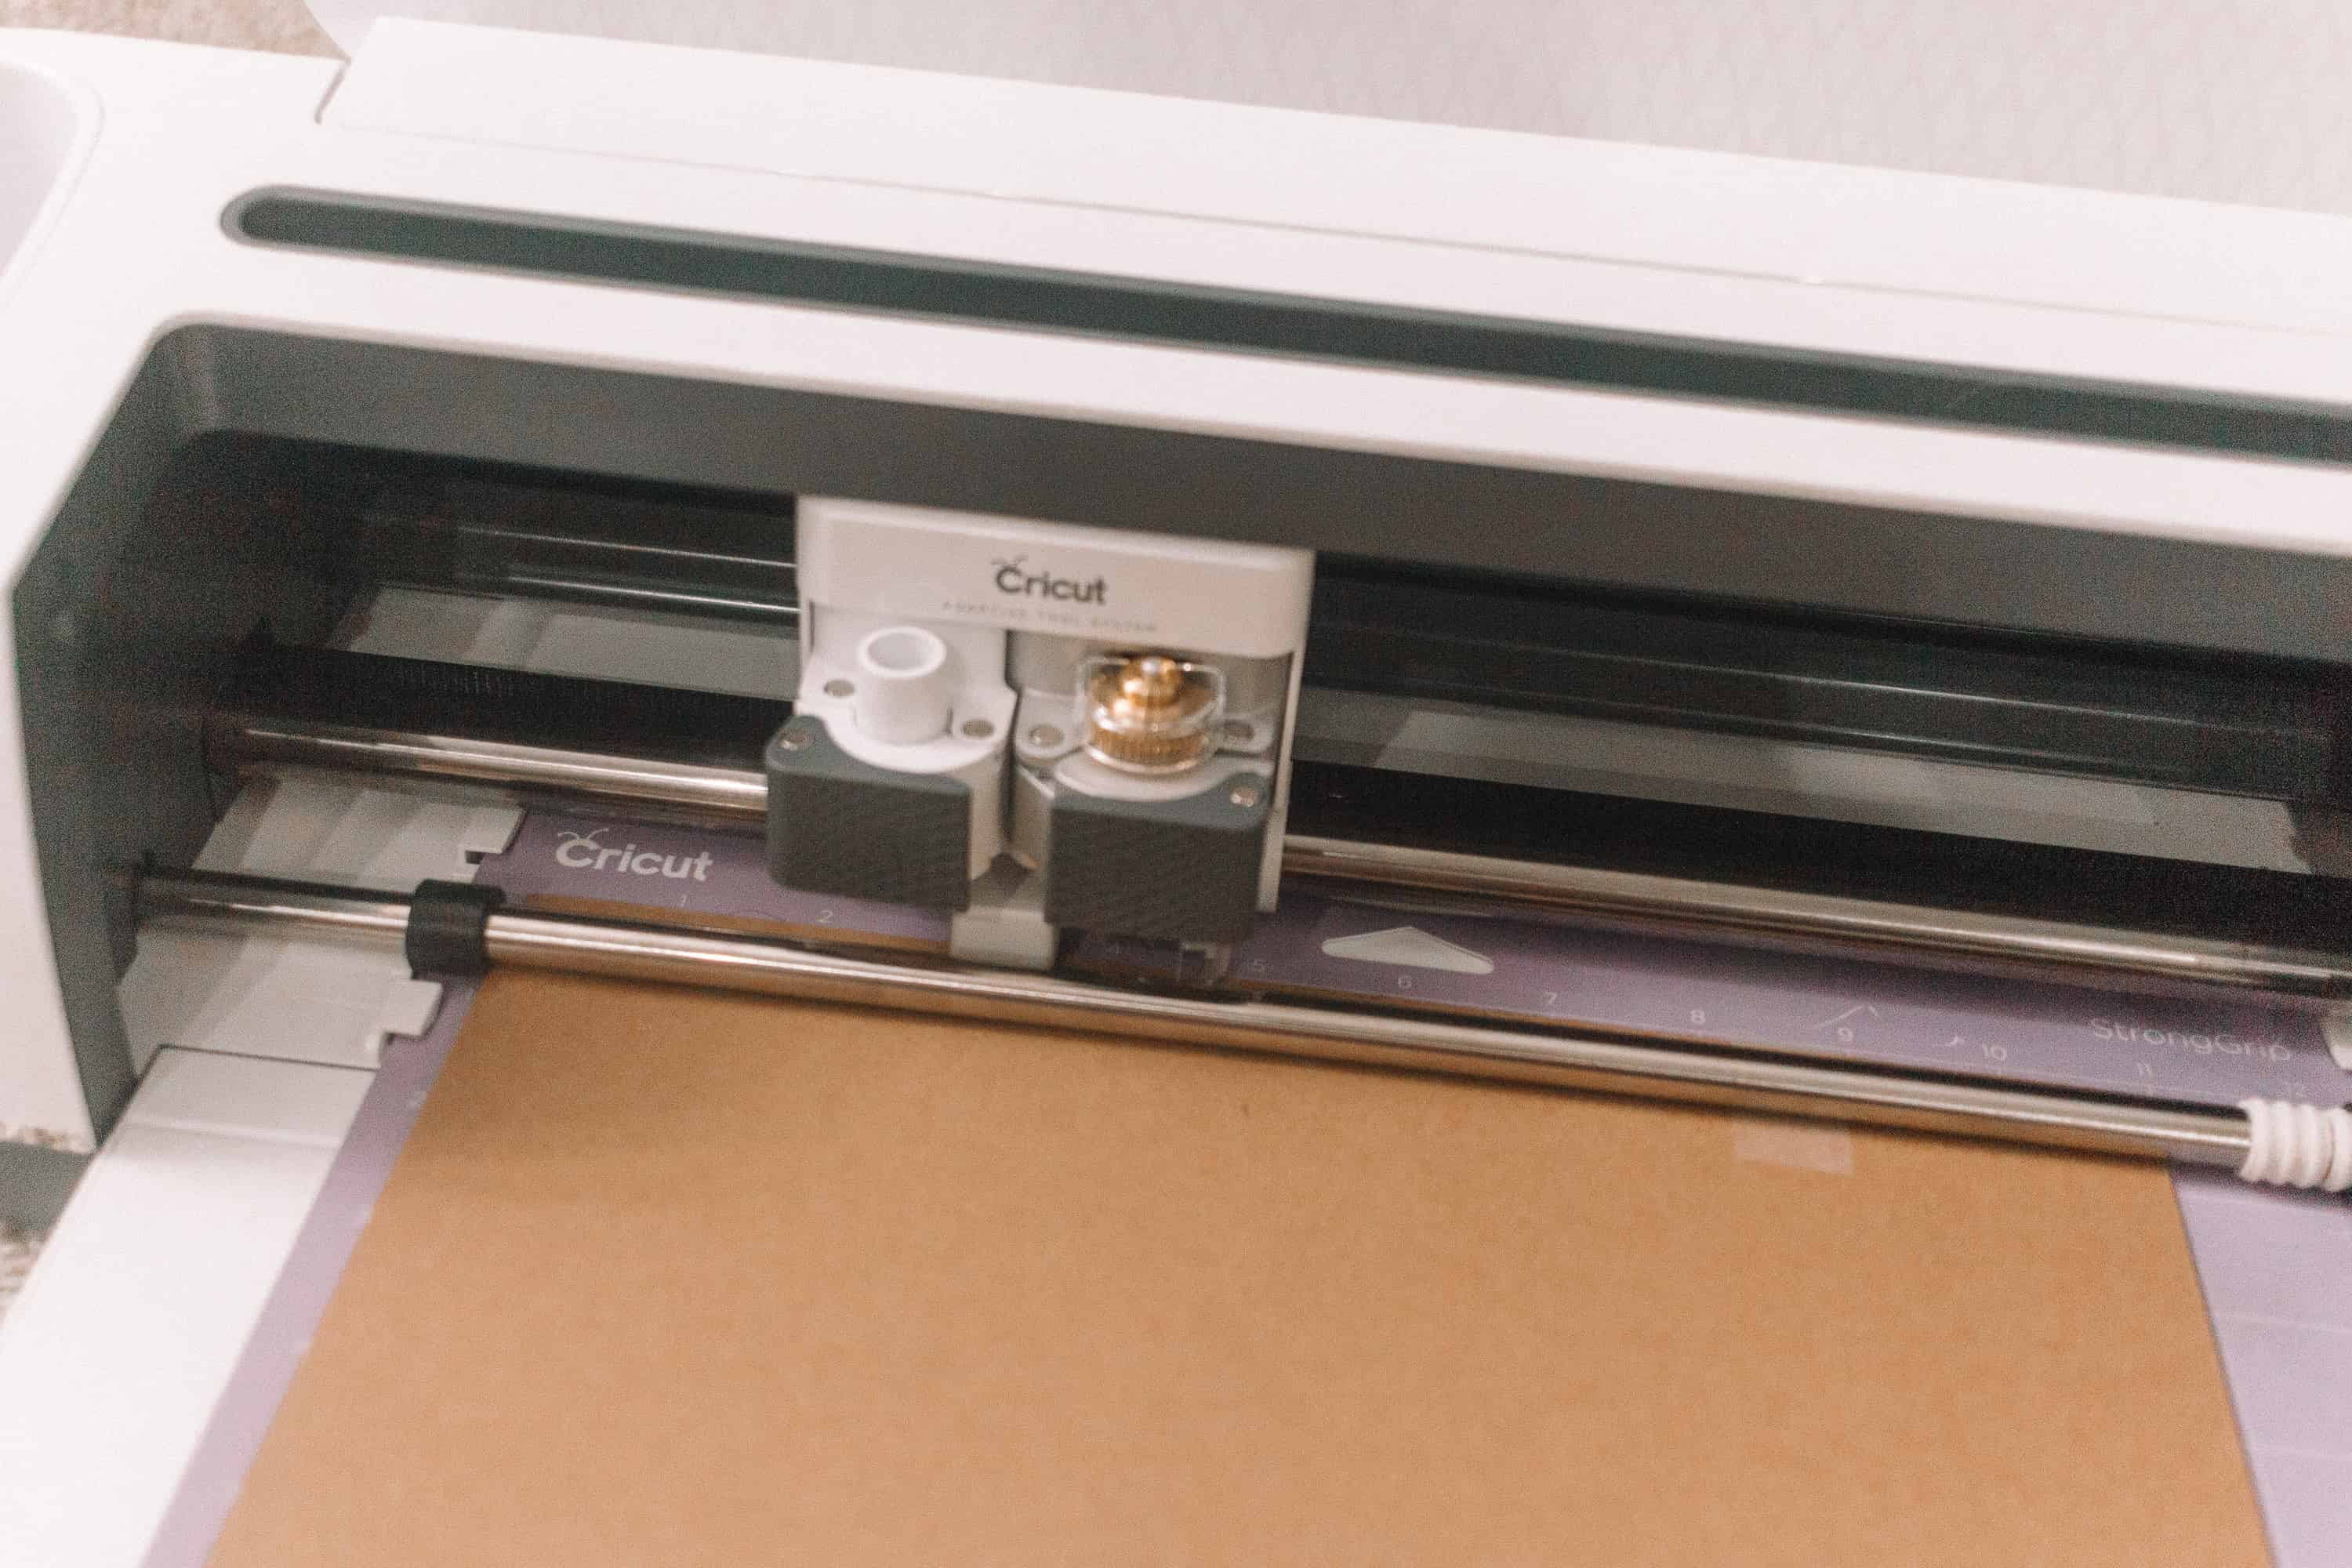 Cutting and Engraving Chipboard with your Cricut Maker! From overthebigmoon.com!